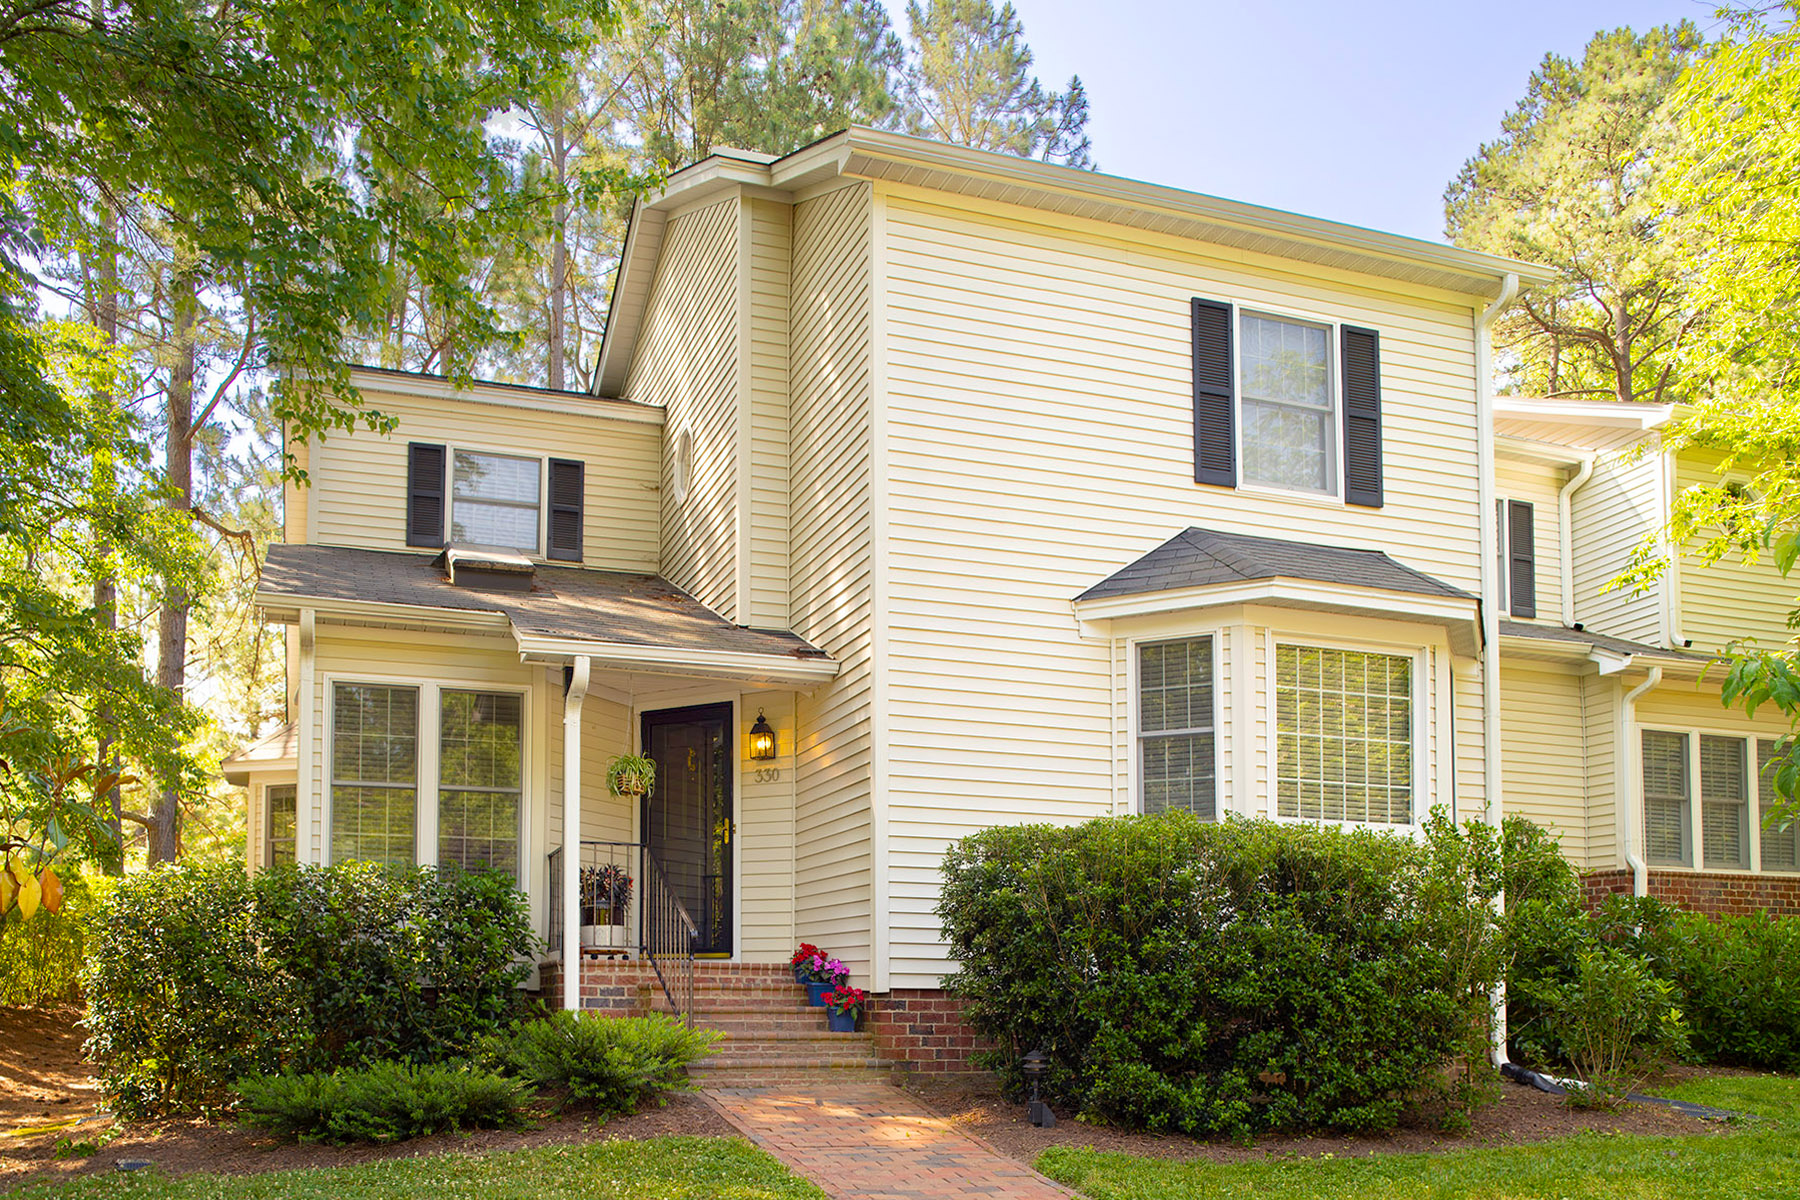 330 Whisperwood Close townhome - exterior